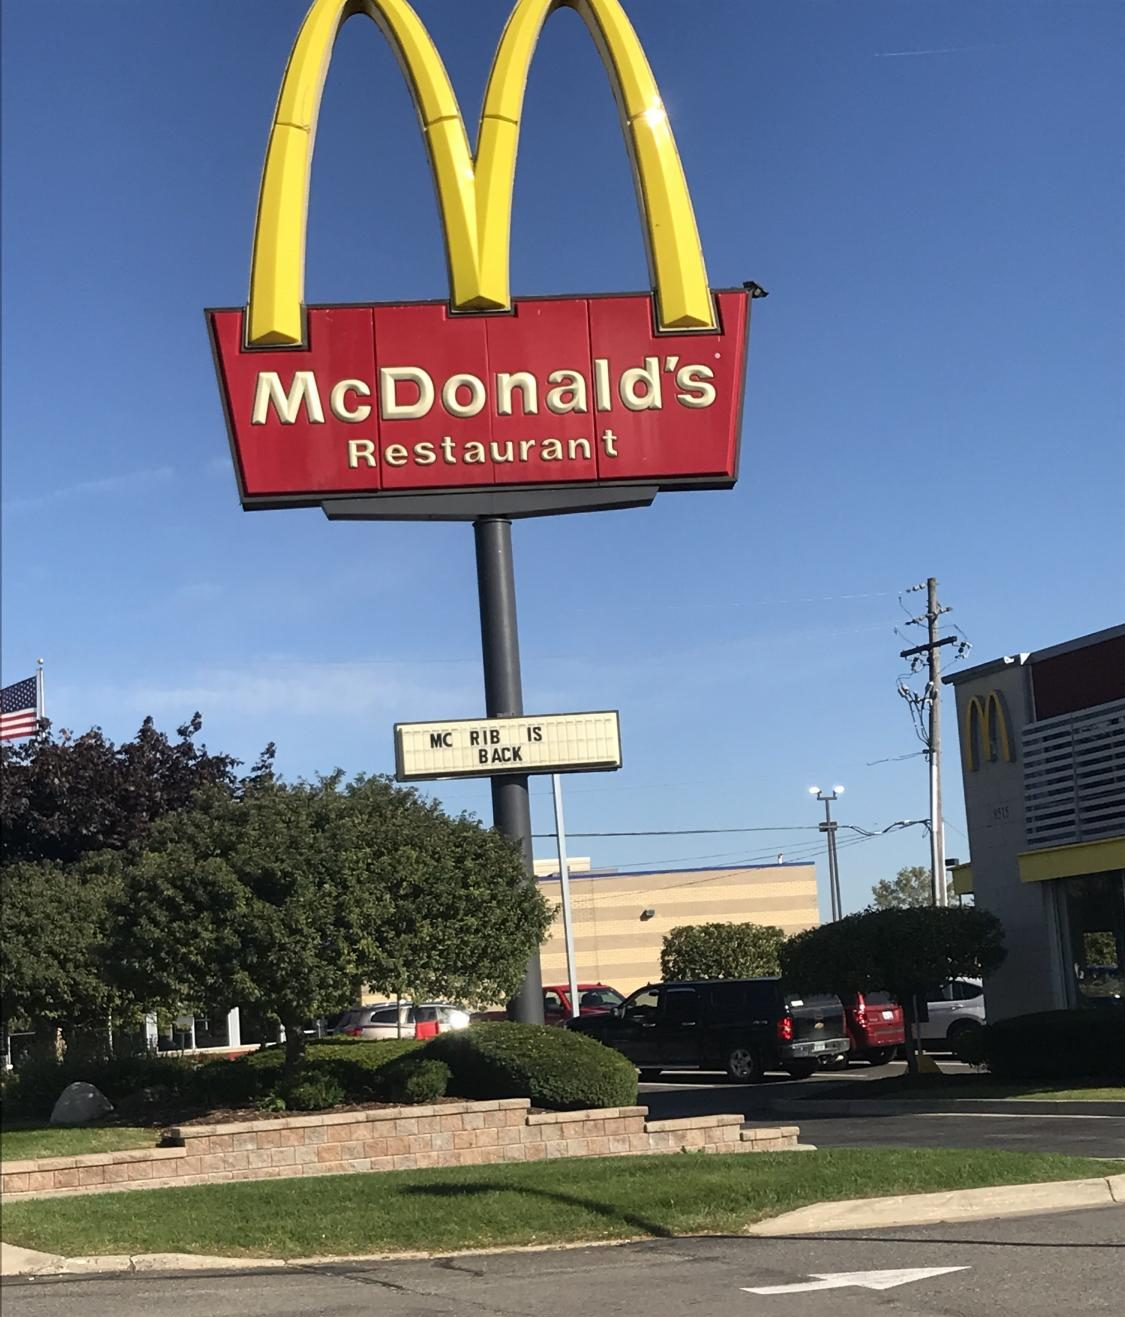 This is the first sight of pulling up to the Mcdonald's on Grand River Avenue with the McRib on the menu.